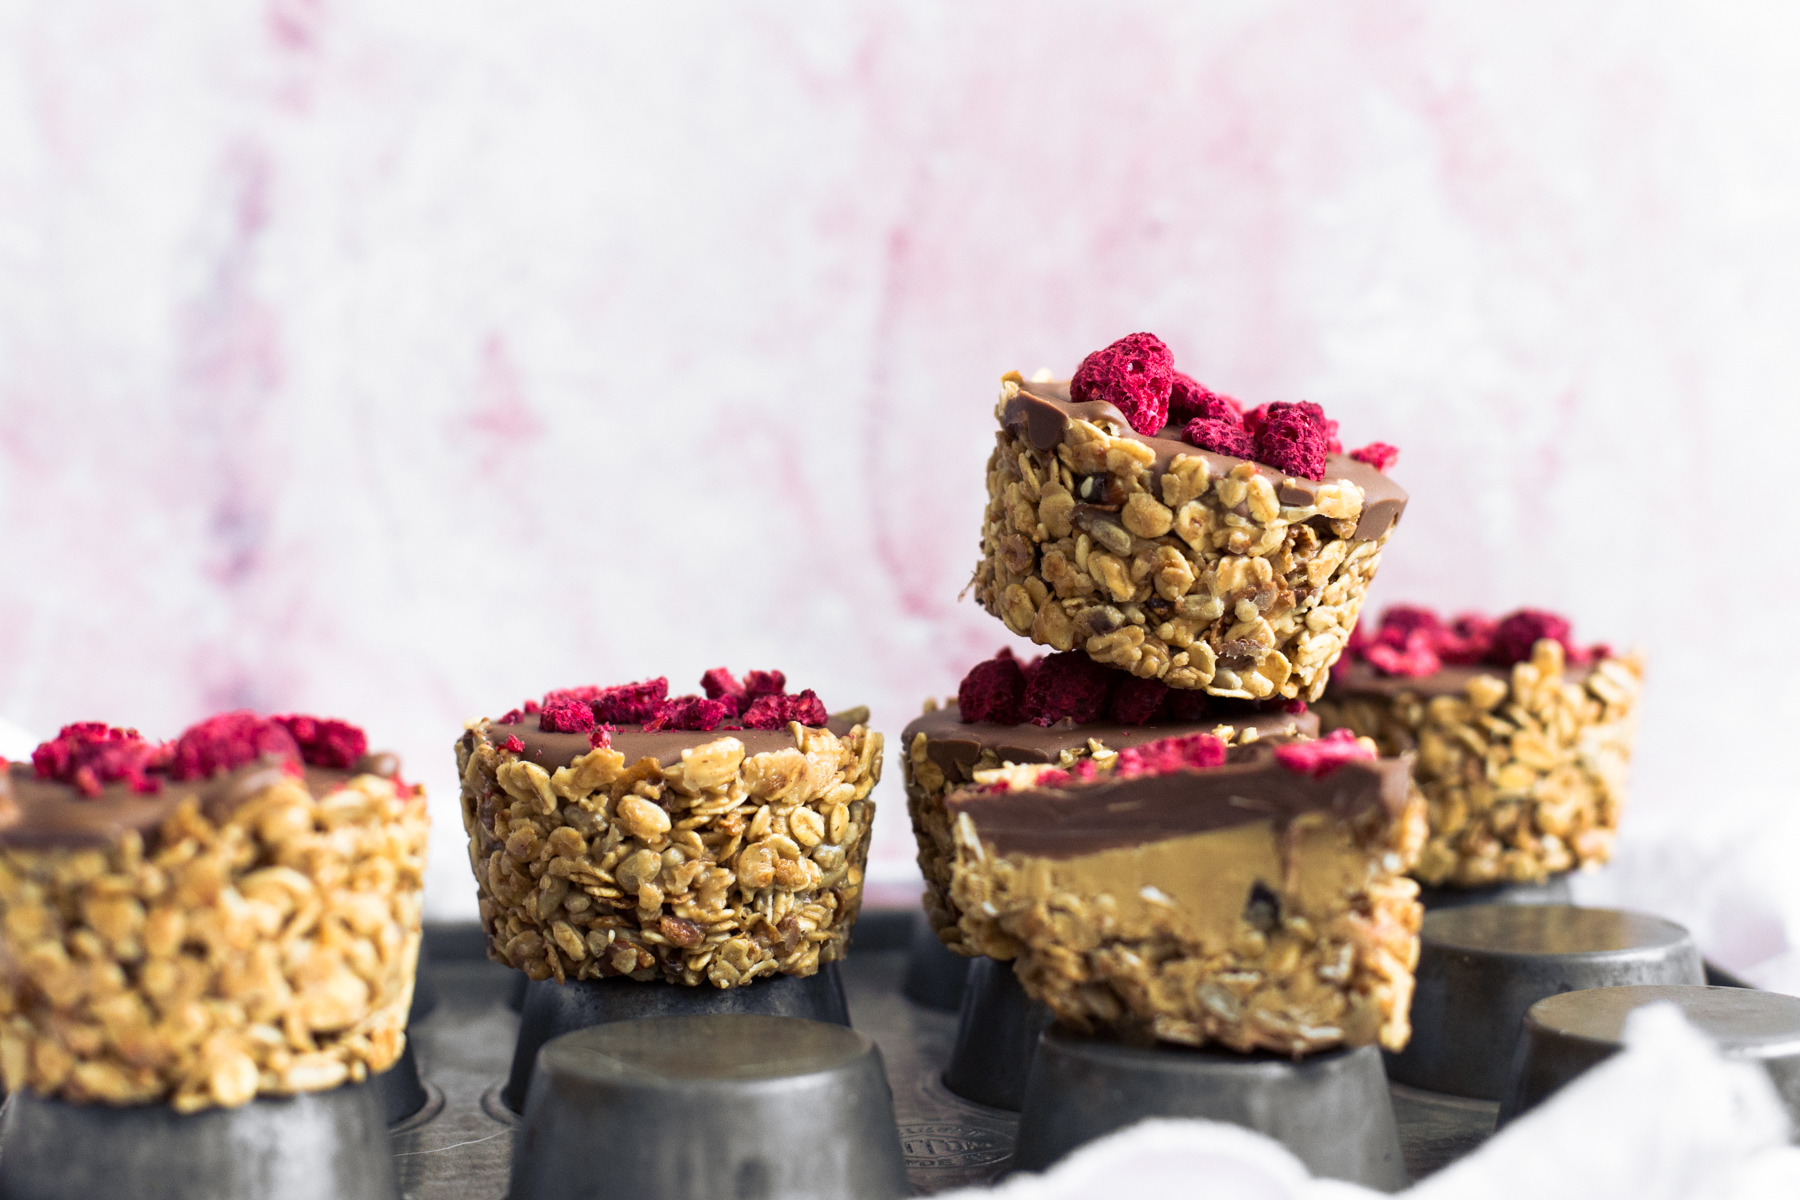 Simple No-Bake Vegan Granola Cups filled with Nut Butter of your choice and topped off with Chocolate. Read in under an hour. #vegan #granola #oats #chocolate #snacks #healthy #peanutbutter #nobake #slice #fridge #veganrecipes